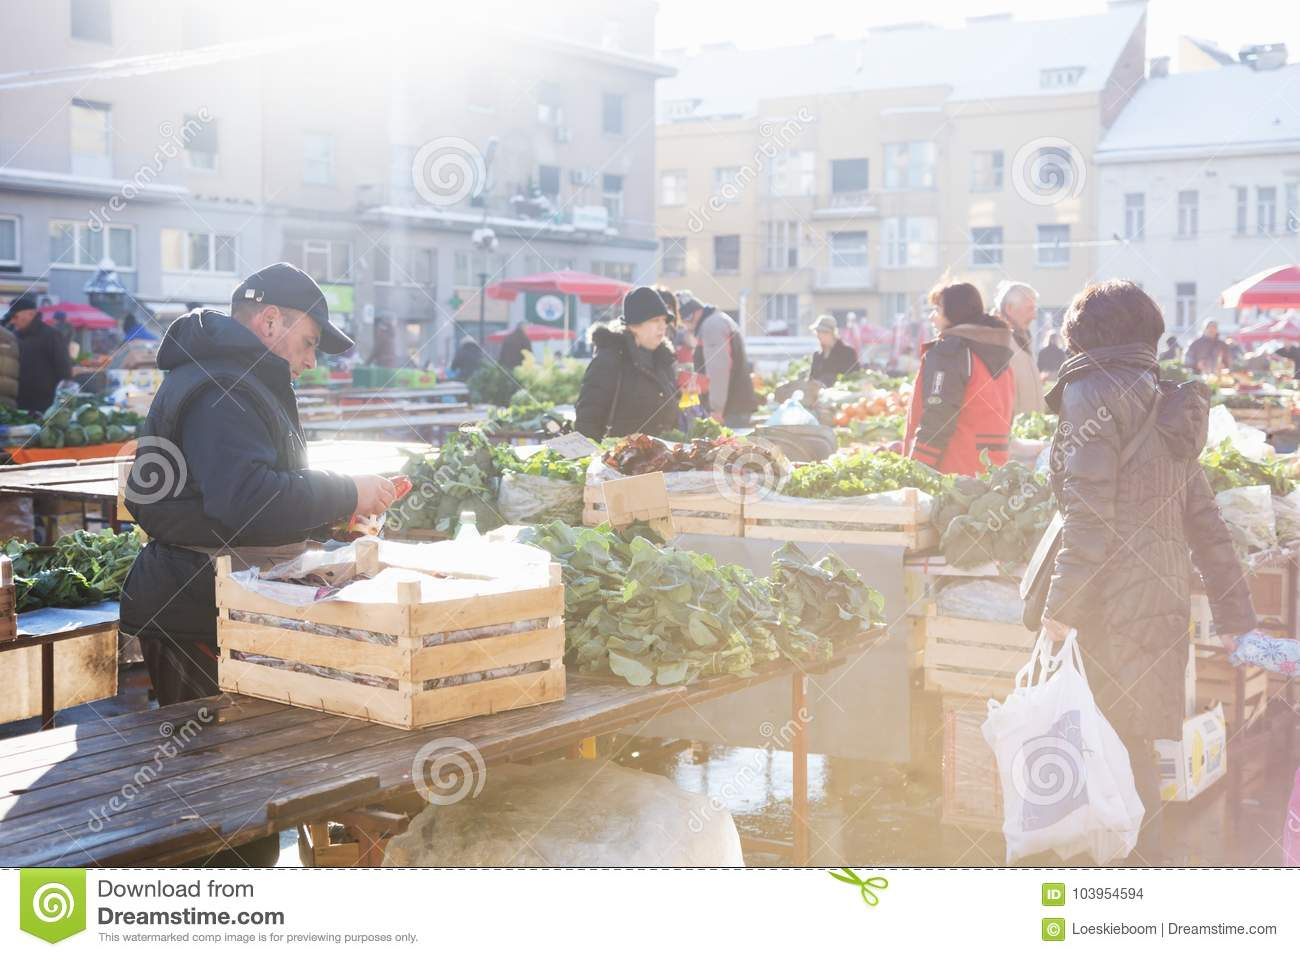 Zagreb, Croatia: January 7 2016: Man sorting out vegetables at Dolac market during wintertime with snow